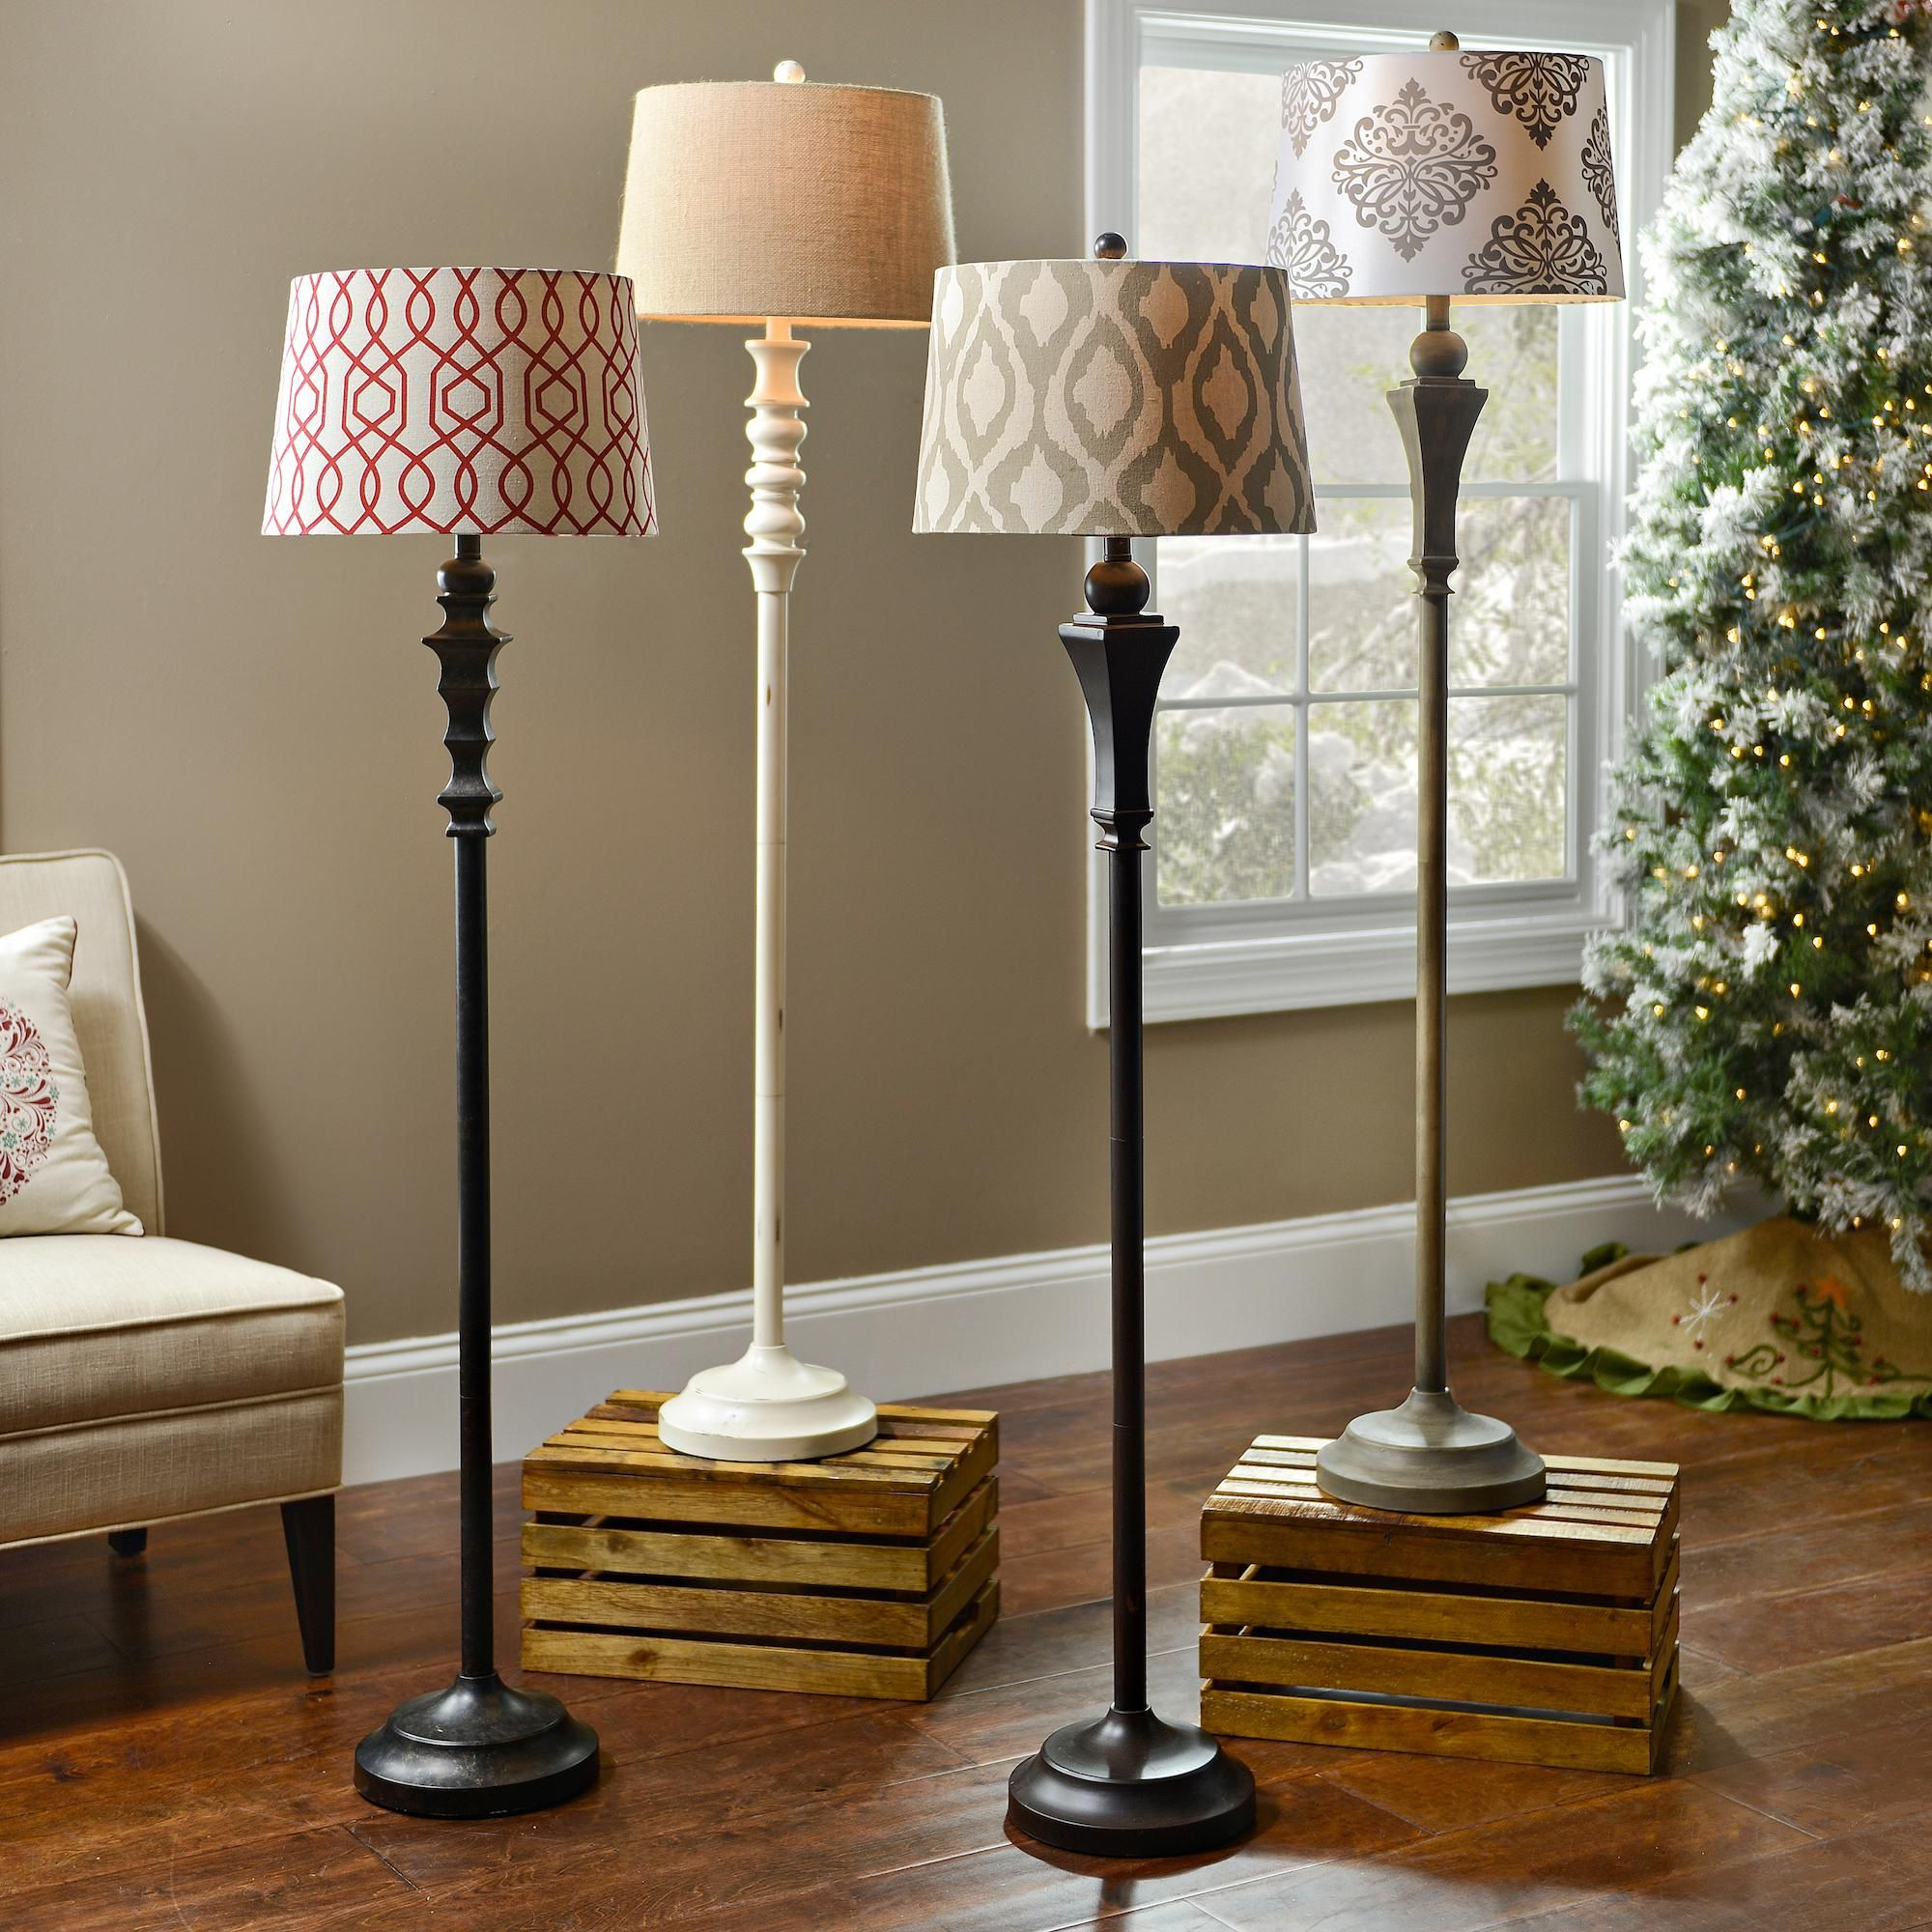 Add Light To A Dim Corner With Stylish Floor Lamp, Lamps ...